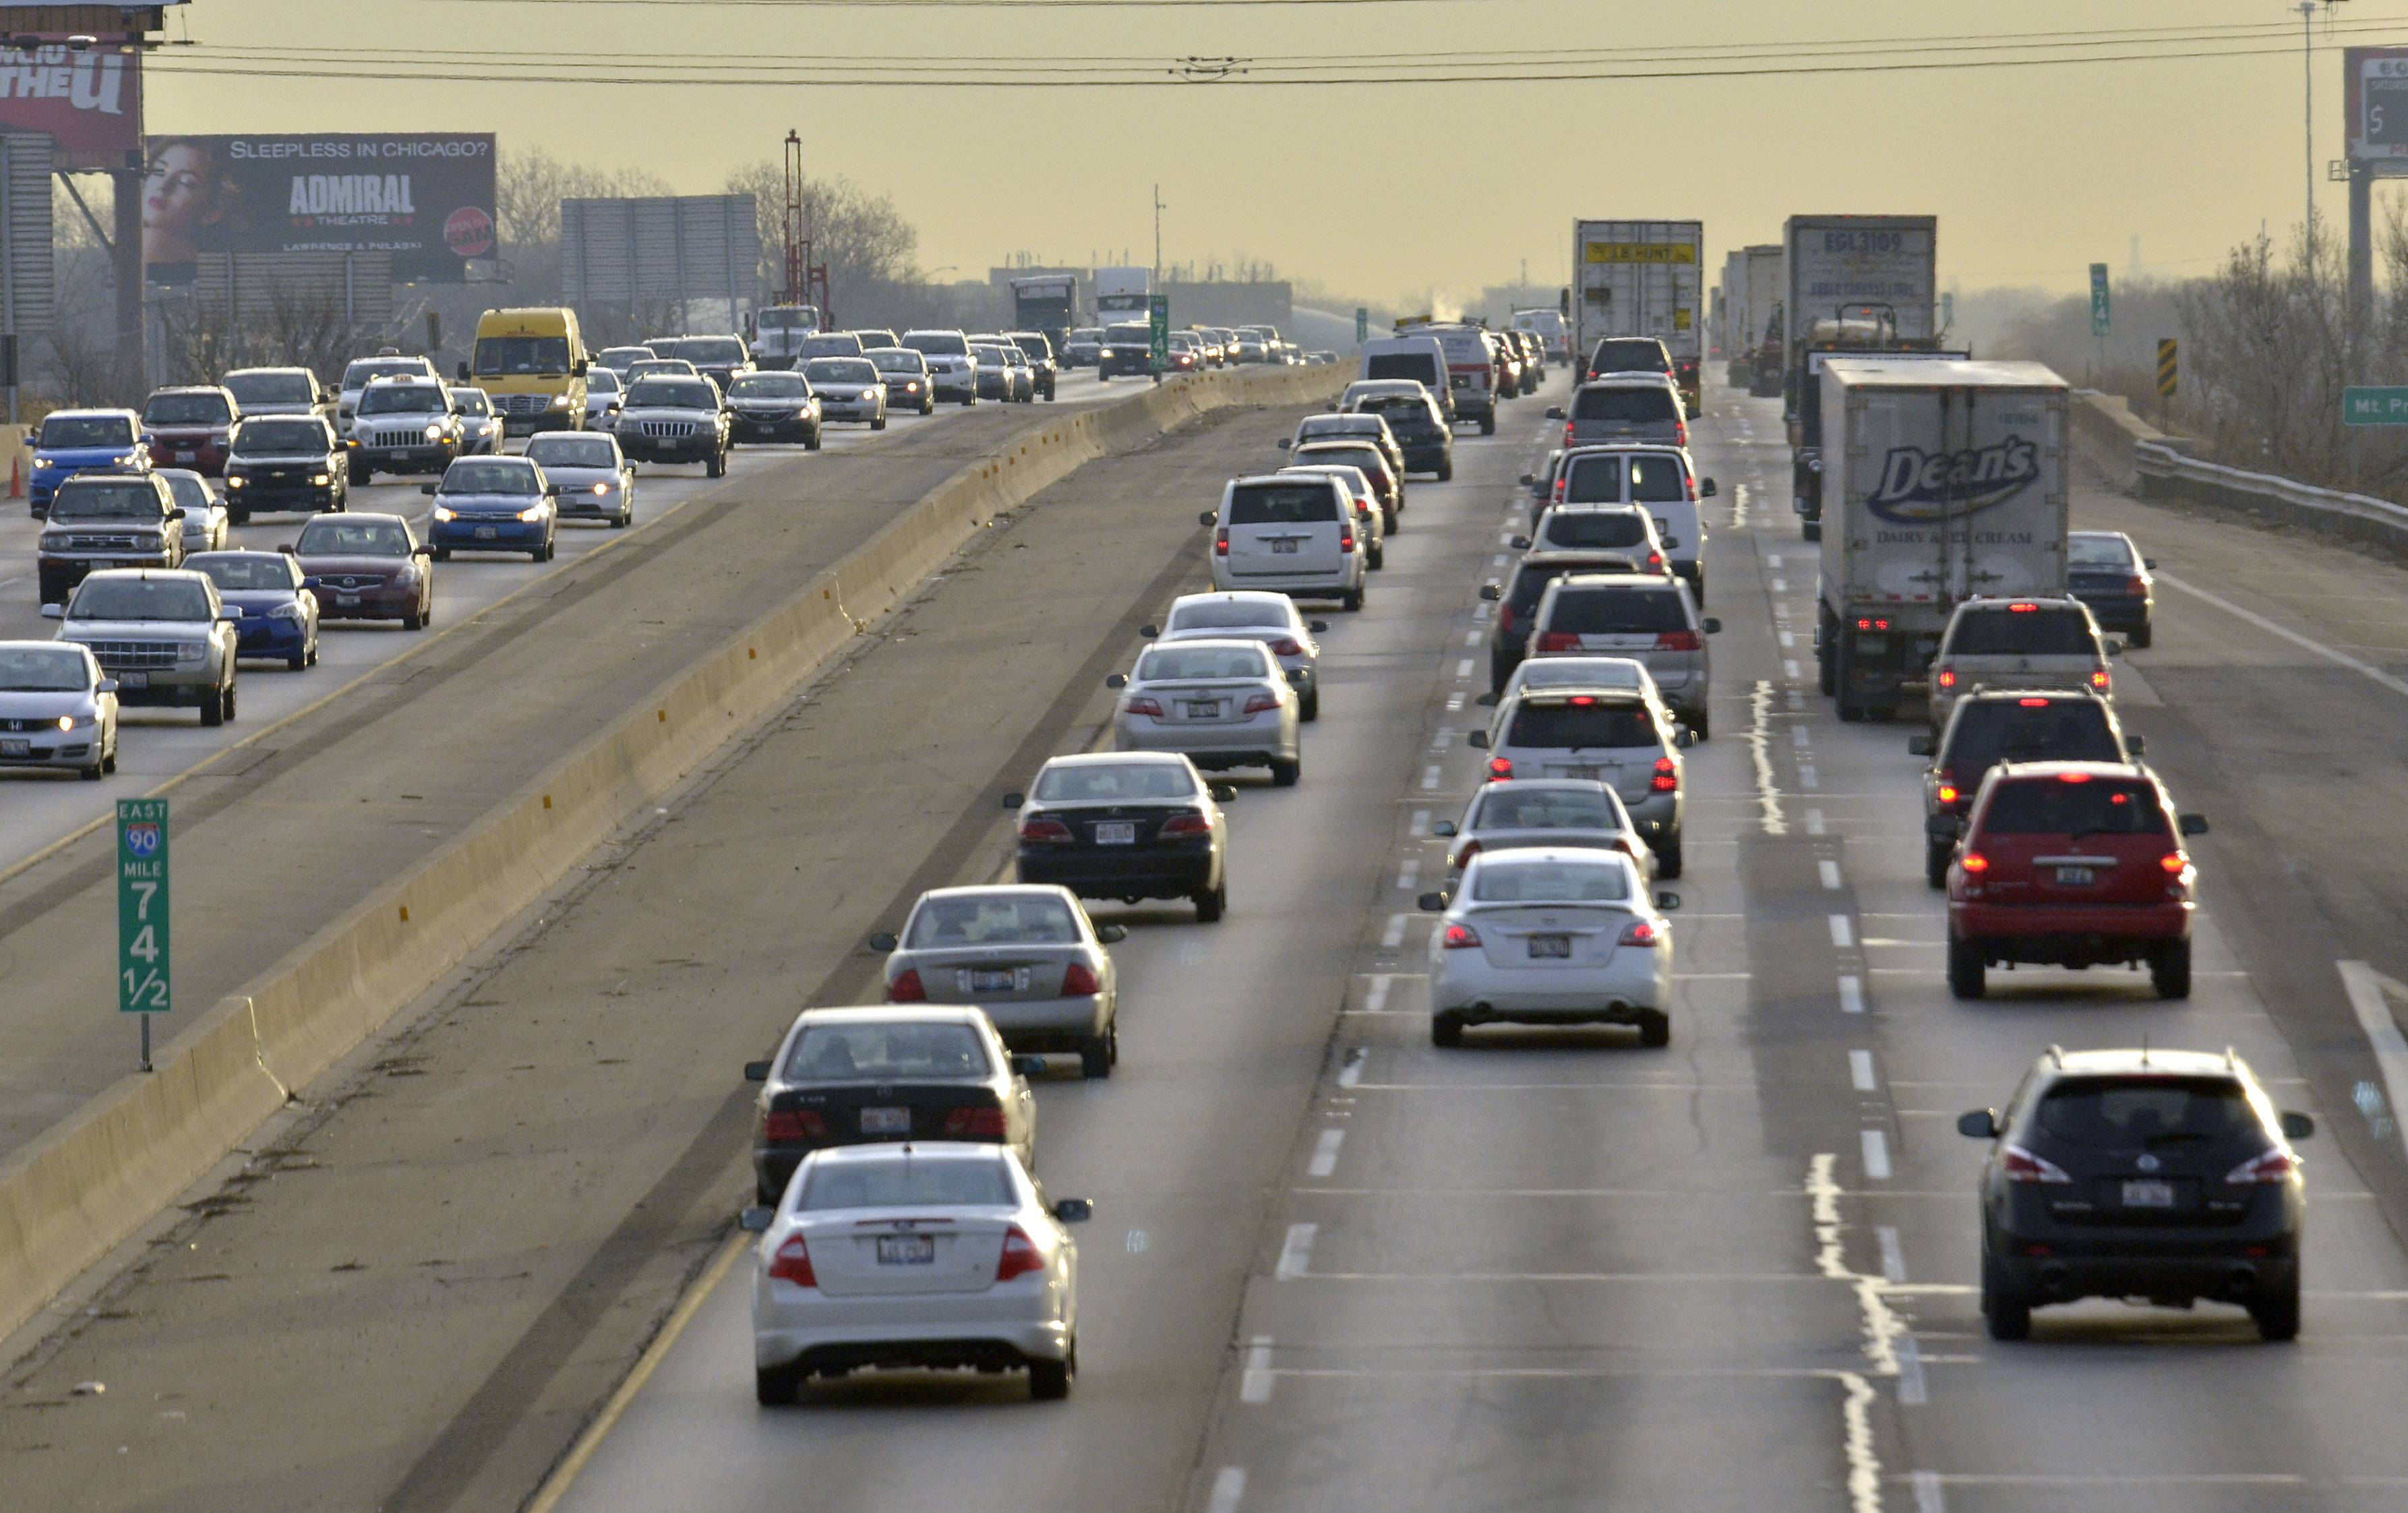 Brace for heavy traffic heading into the holiday week, AAA says.